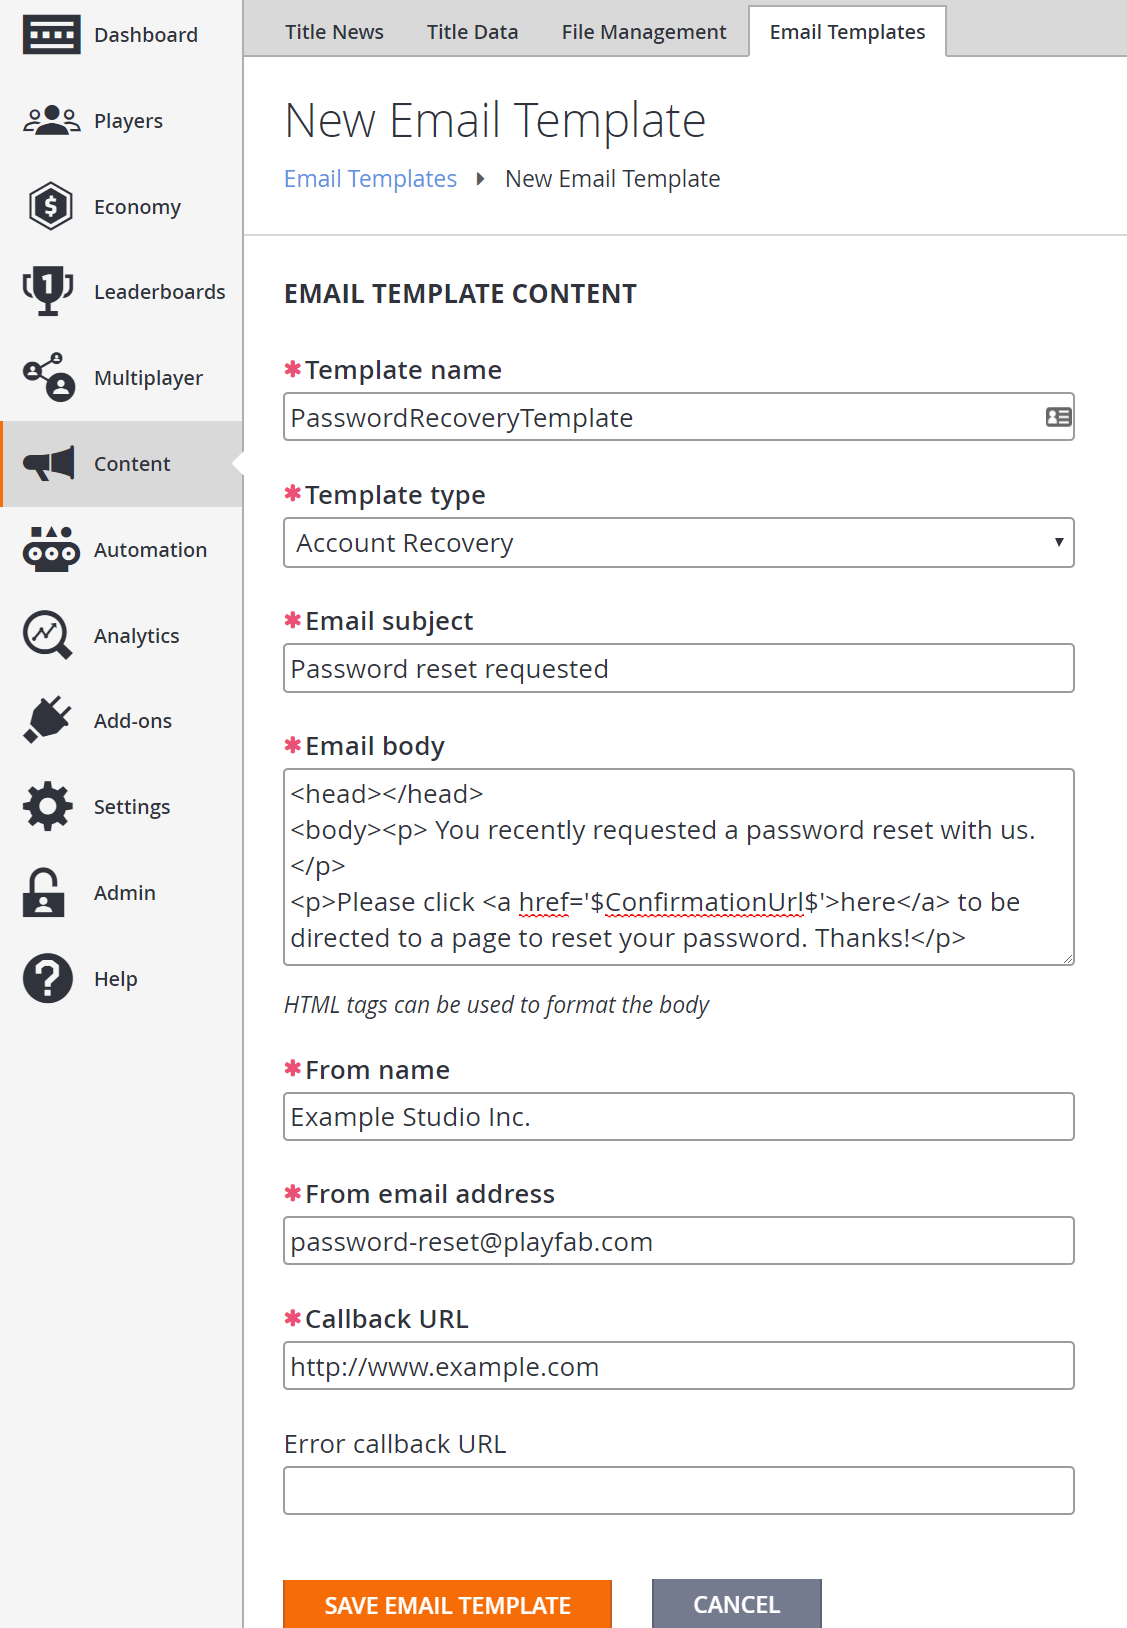 Using Email Templates to Send an Account Recovery Email - PlayFab